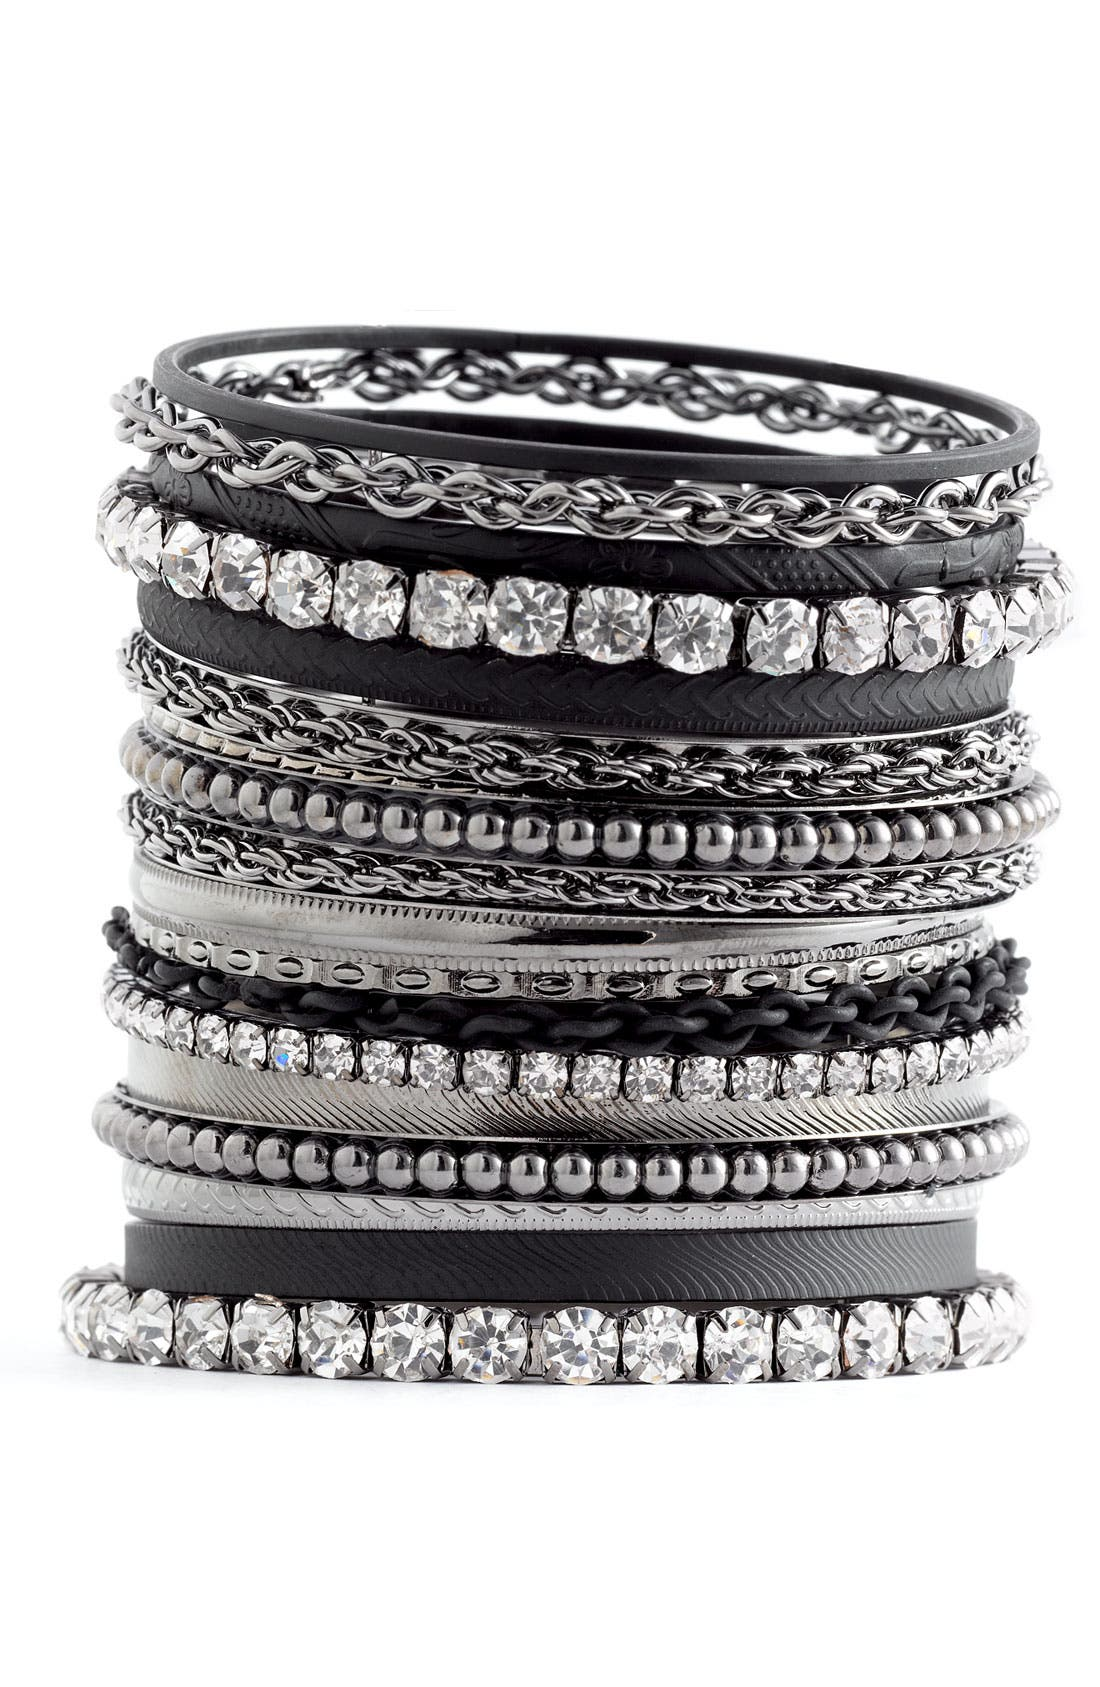 Main Image - Cara Accessories Mixed Media Bangles (Set of 18)